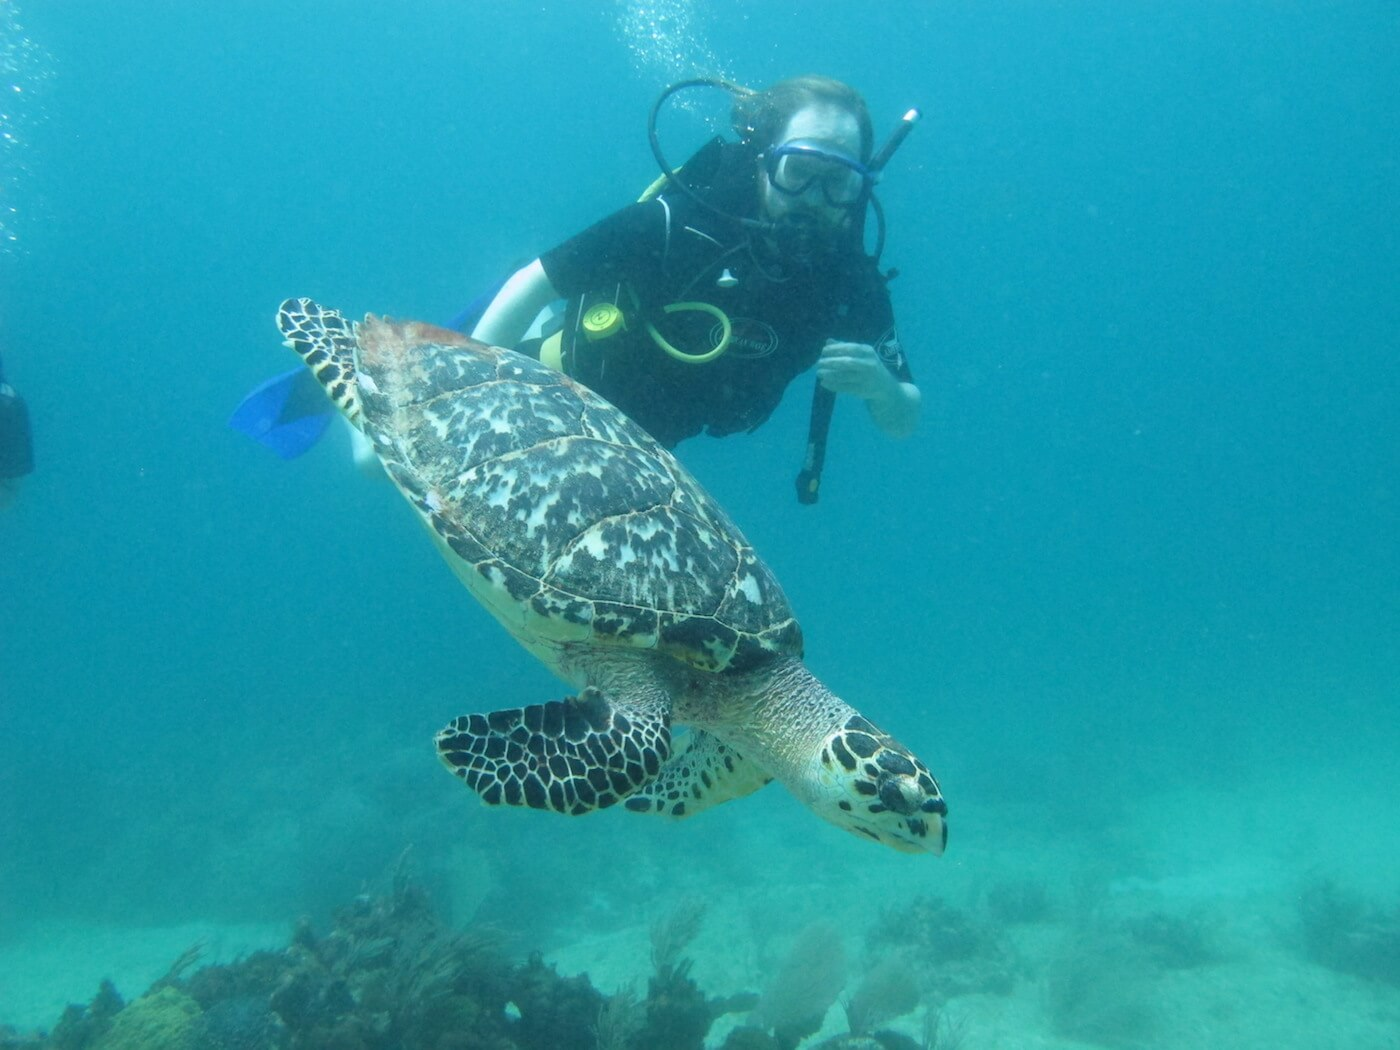 Sea-Turtle-Snorkeling-Scuba-Diving-Tours-Isla-Mujeres-Carey-Dive-Center-7